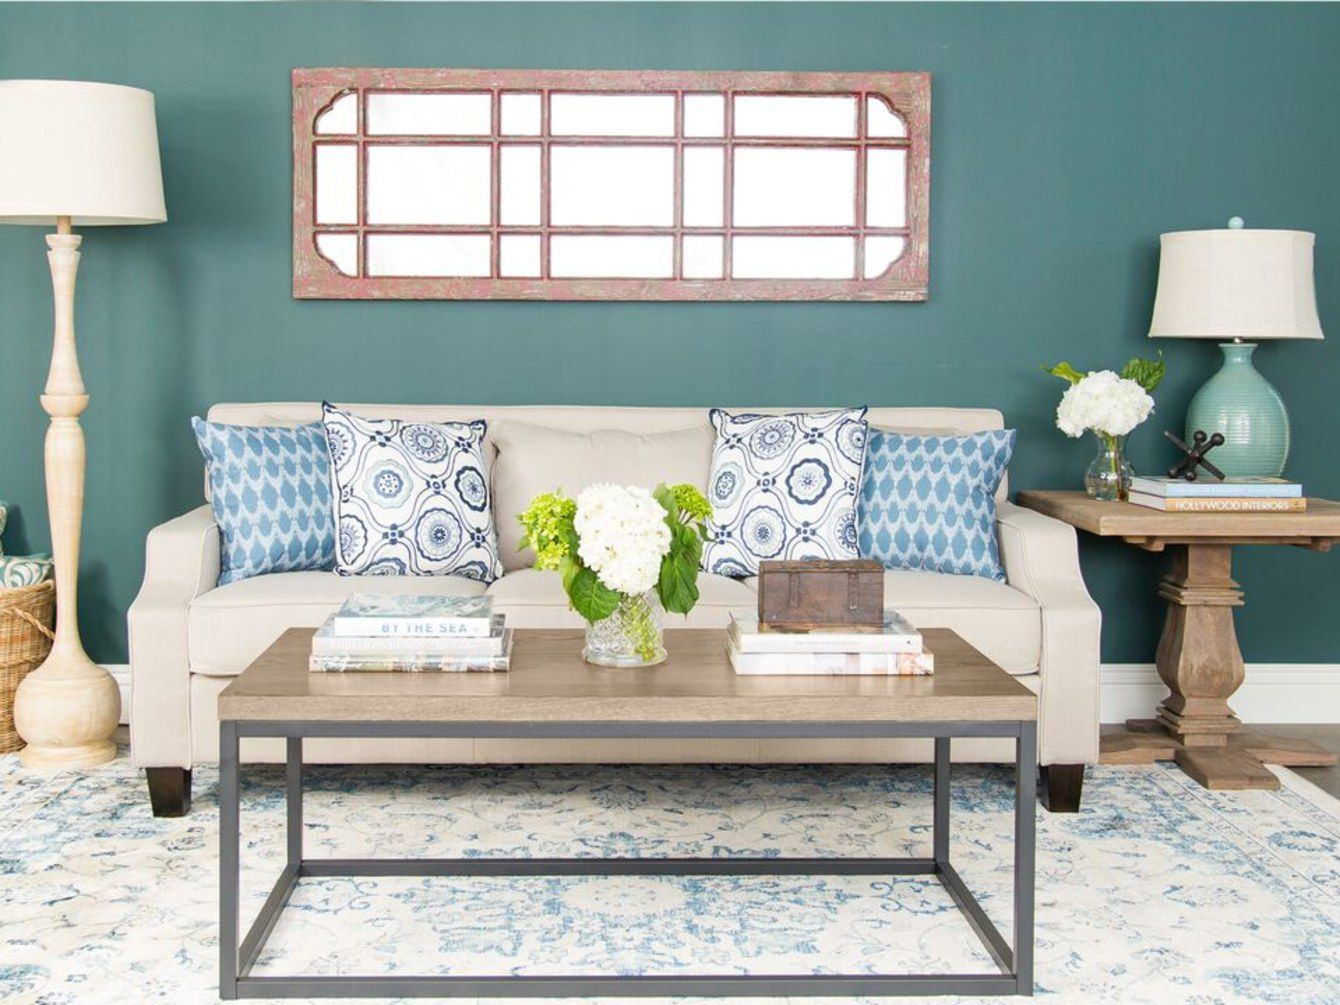 Home Depot and Laurel & Wolf partner for interior design service ...